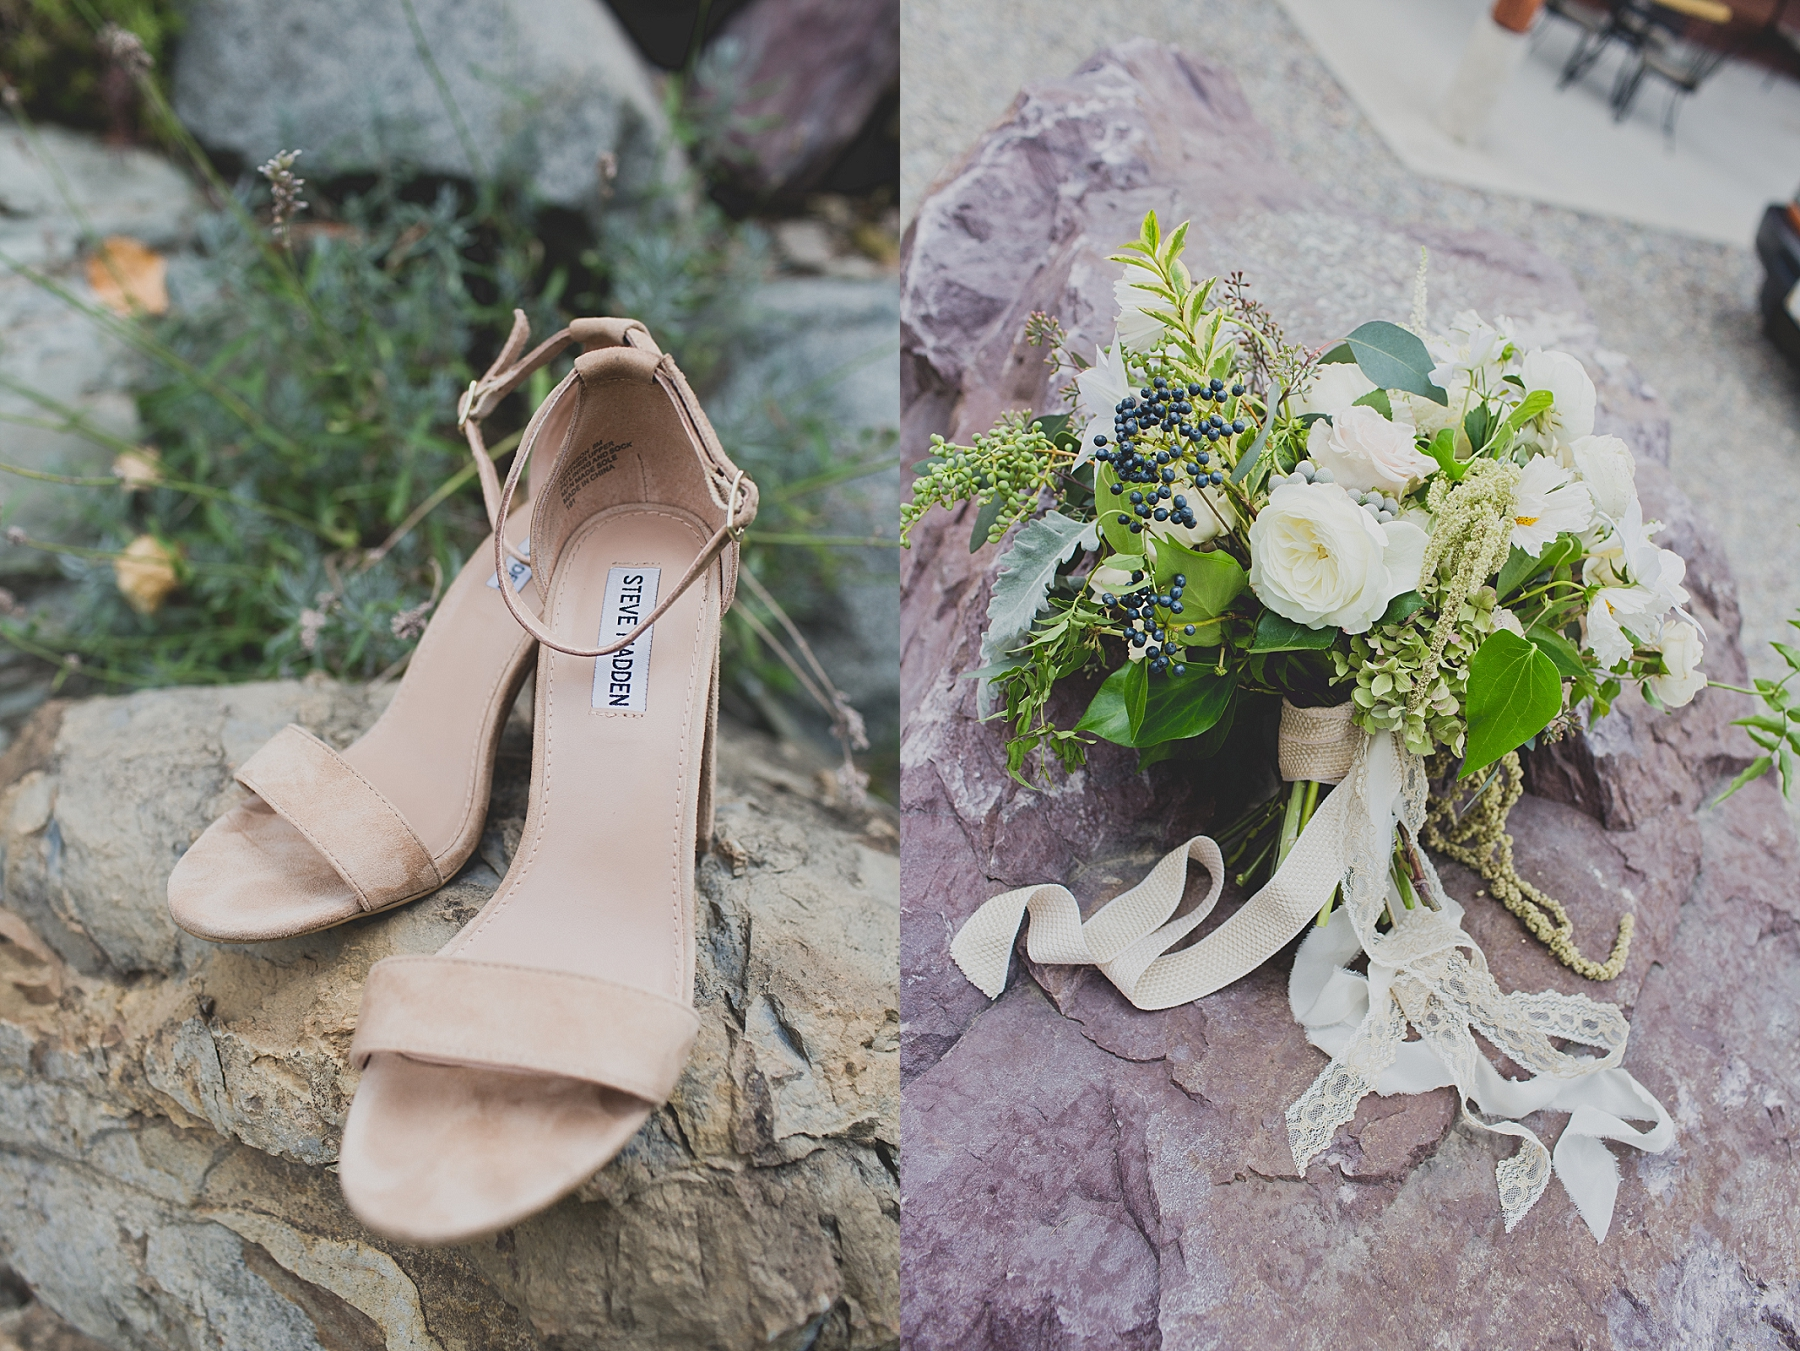 Jennifer_Mooney_Photo_wedding_whitefish_kalispell_montana_wedding_photographer_vintage_diamond_b_weddings_rustic_wedding_184.jpg